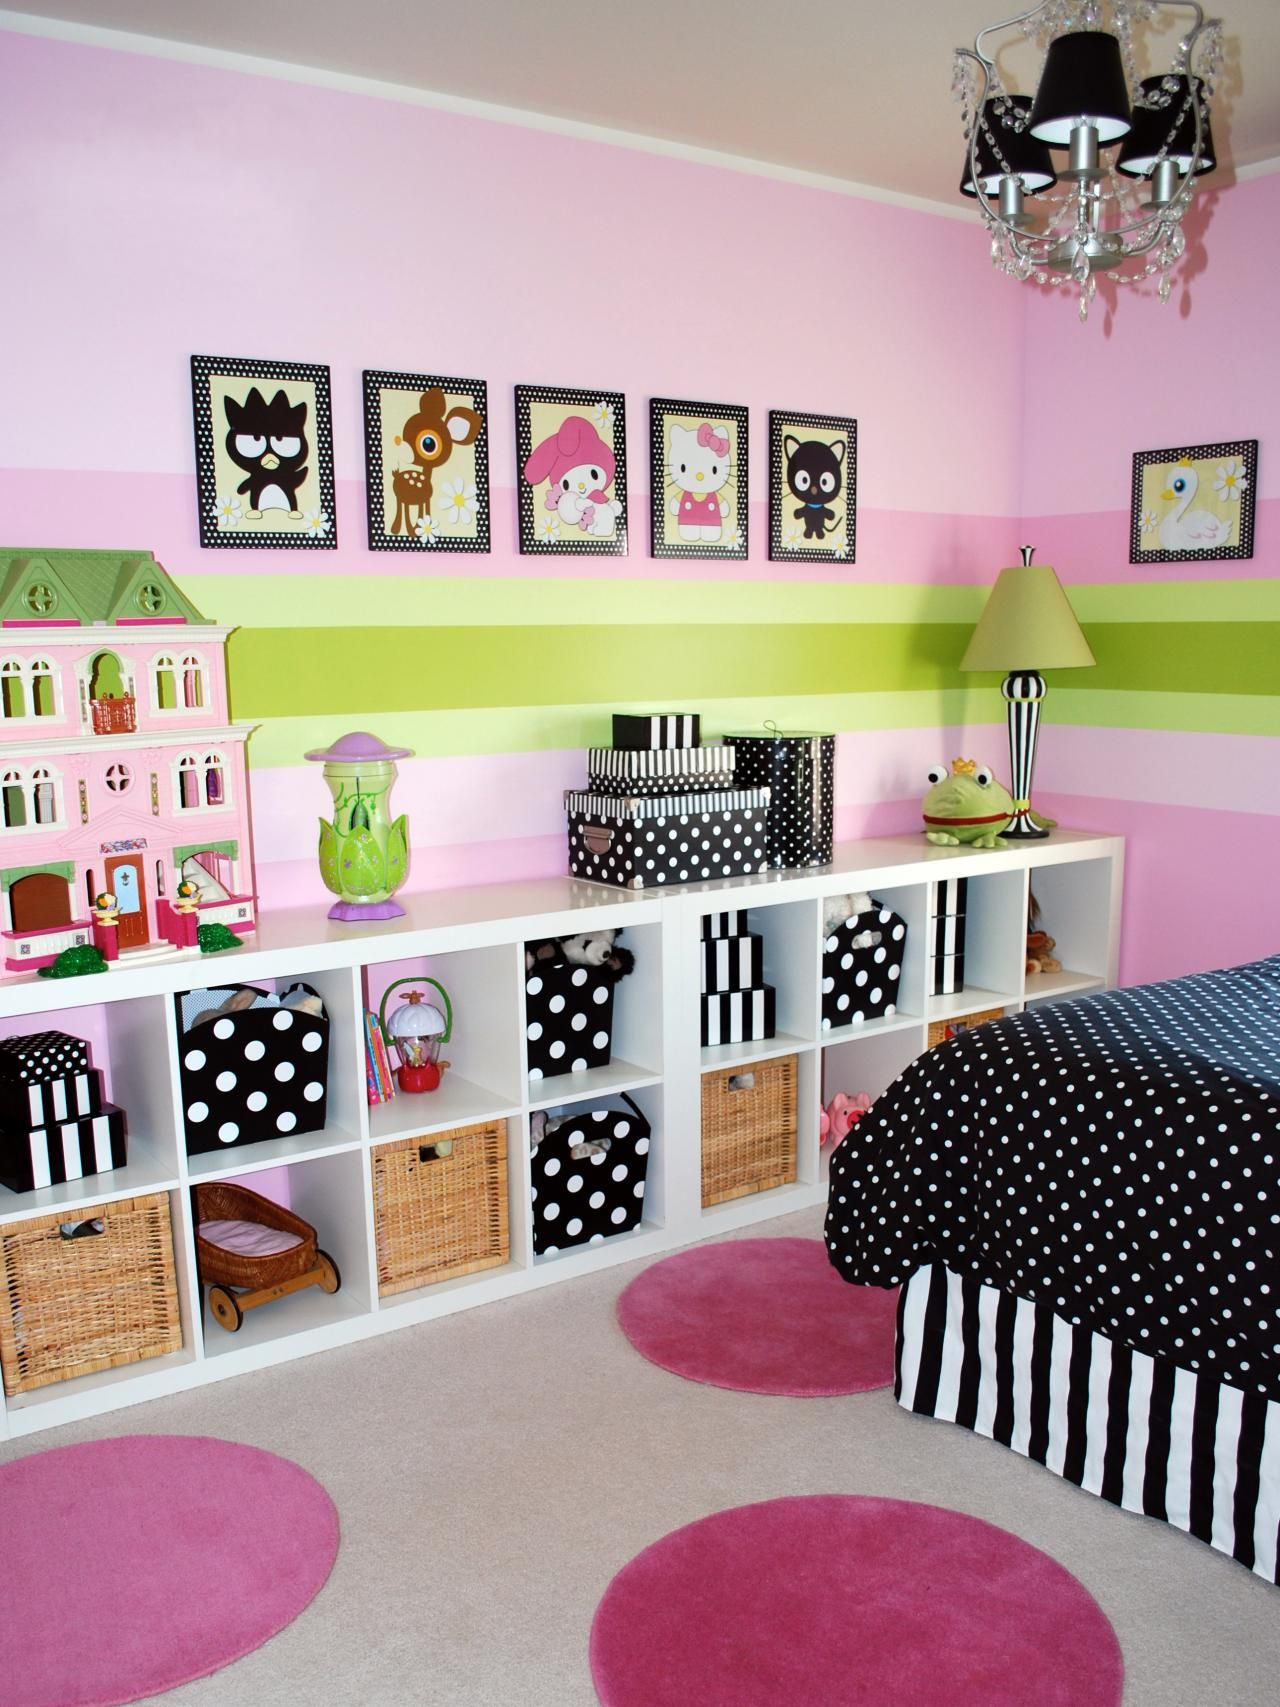 Best Kitchen Gallery: 8 Ideas For Kids Bedroom Themes Room Playroom 10 Decorating Rooms of Kids Bedroom Themes Girls  on rachelxblog.com